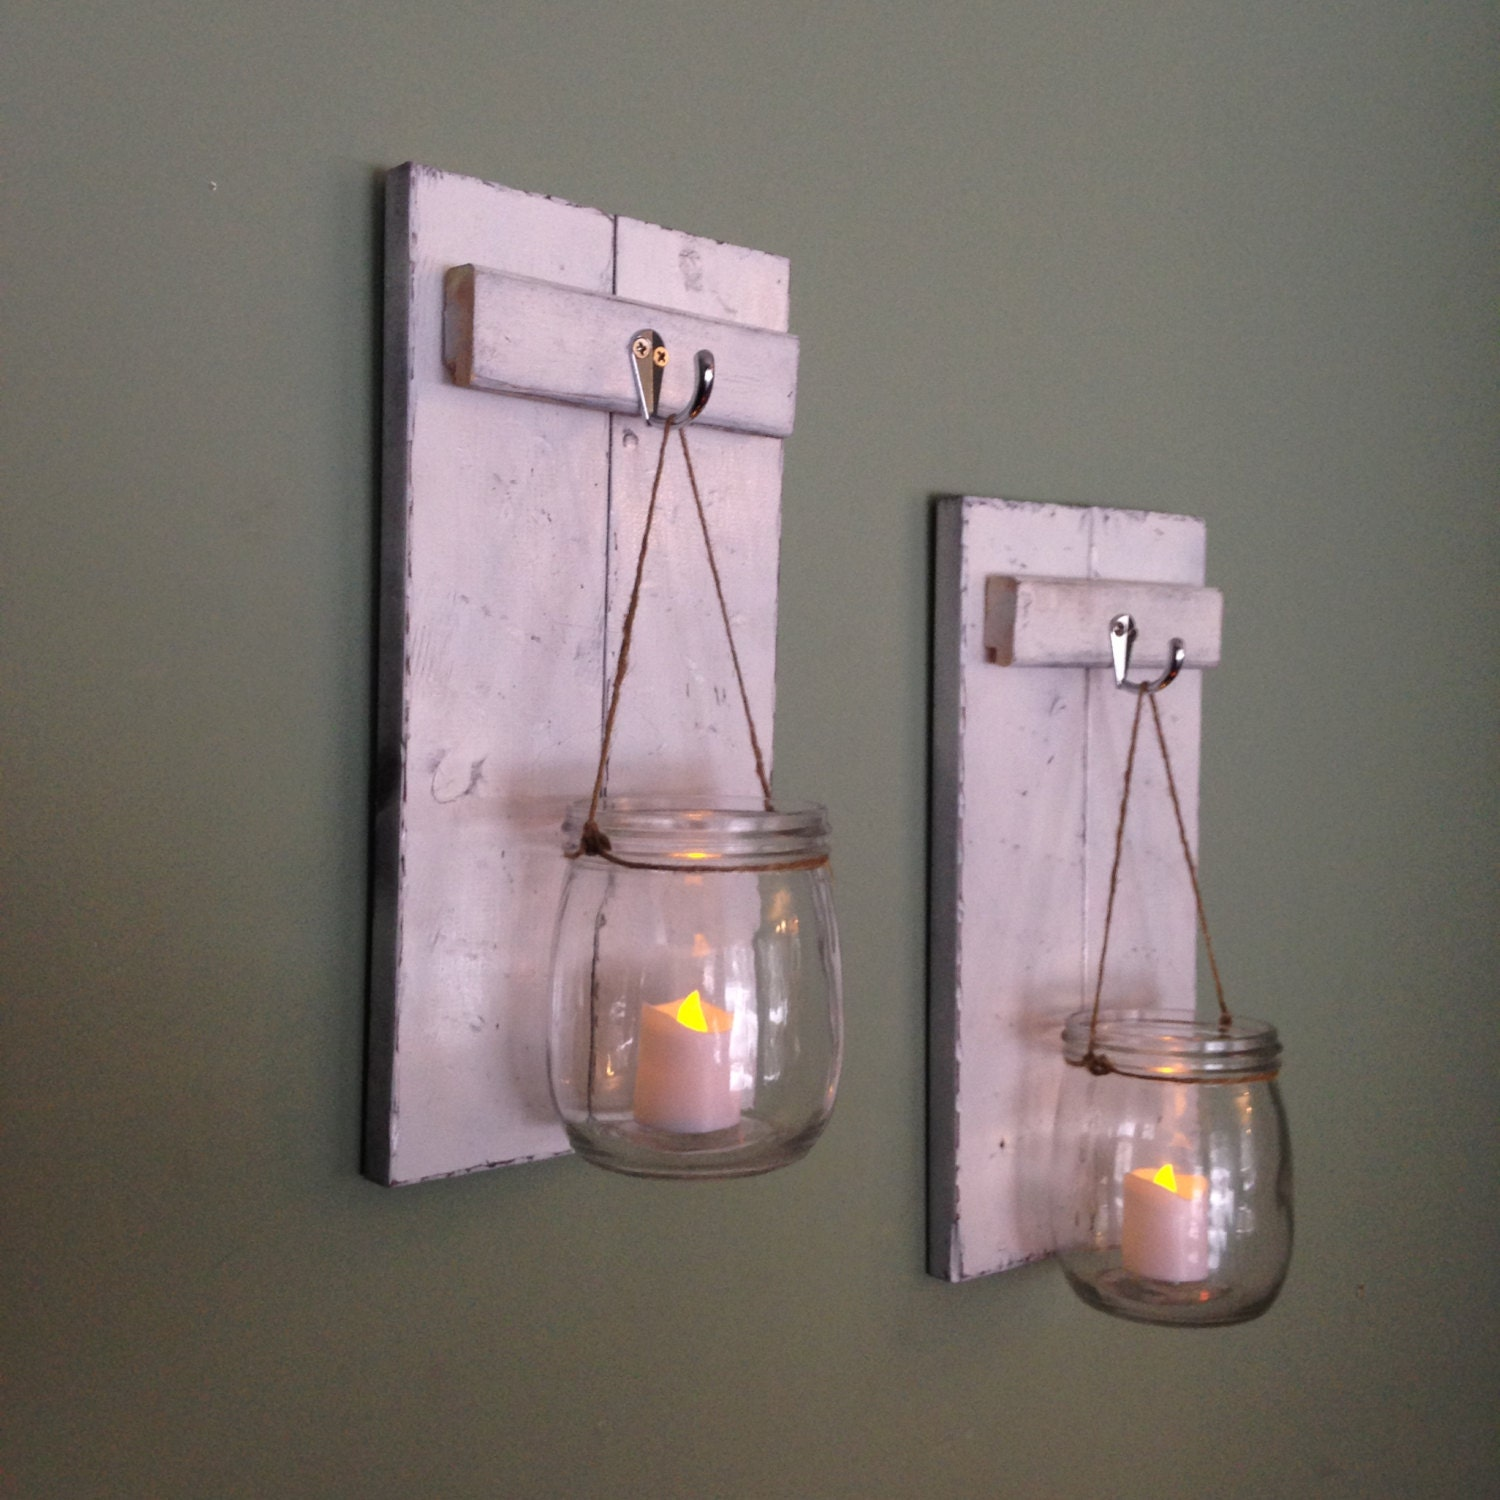 How To Make Wall Sconces For Candles : Wooden Candle Holder Mason Jar Wall Sconce Rustic by CoveDecor